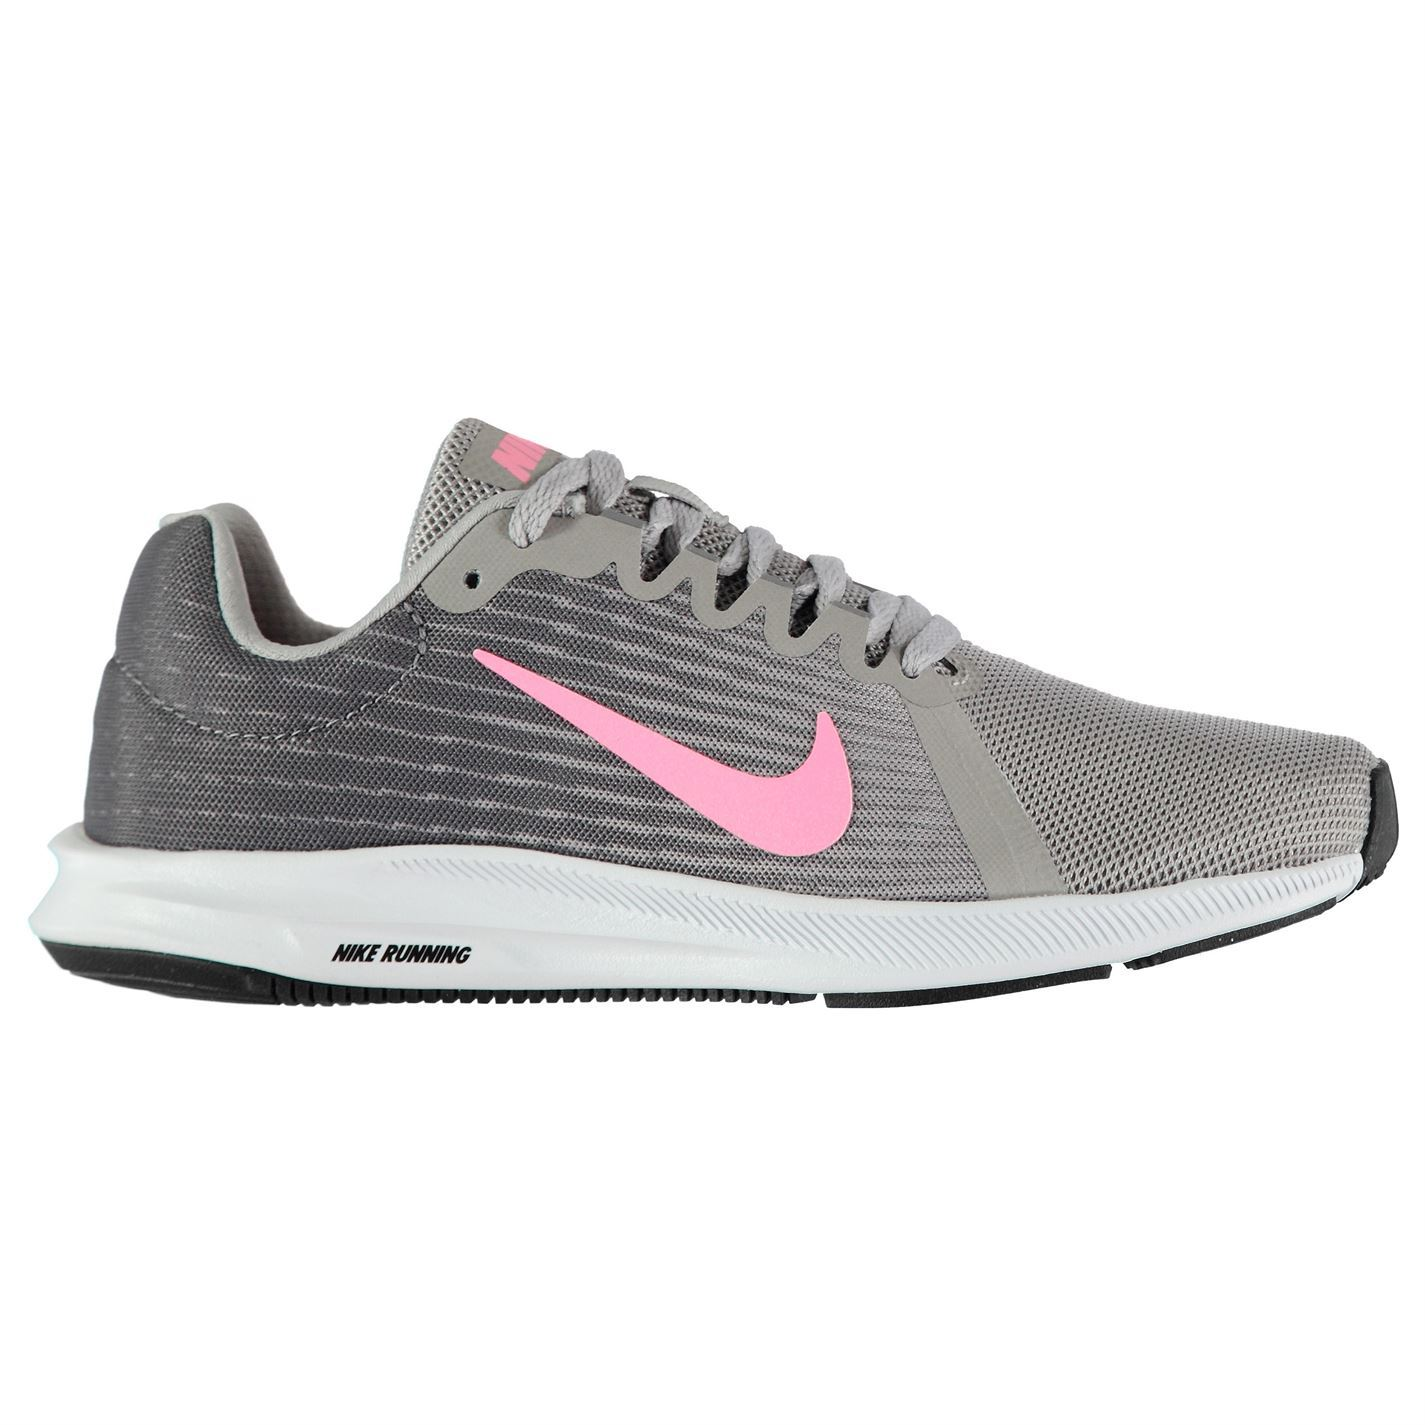 f0a1b4442ffc8 ... Nike Downshifter 8 Running Shoes Womens Grey/Pink Run Jogging Trainers  Sneakers ...